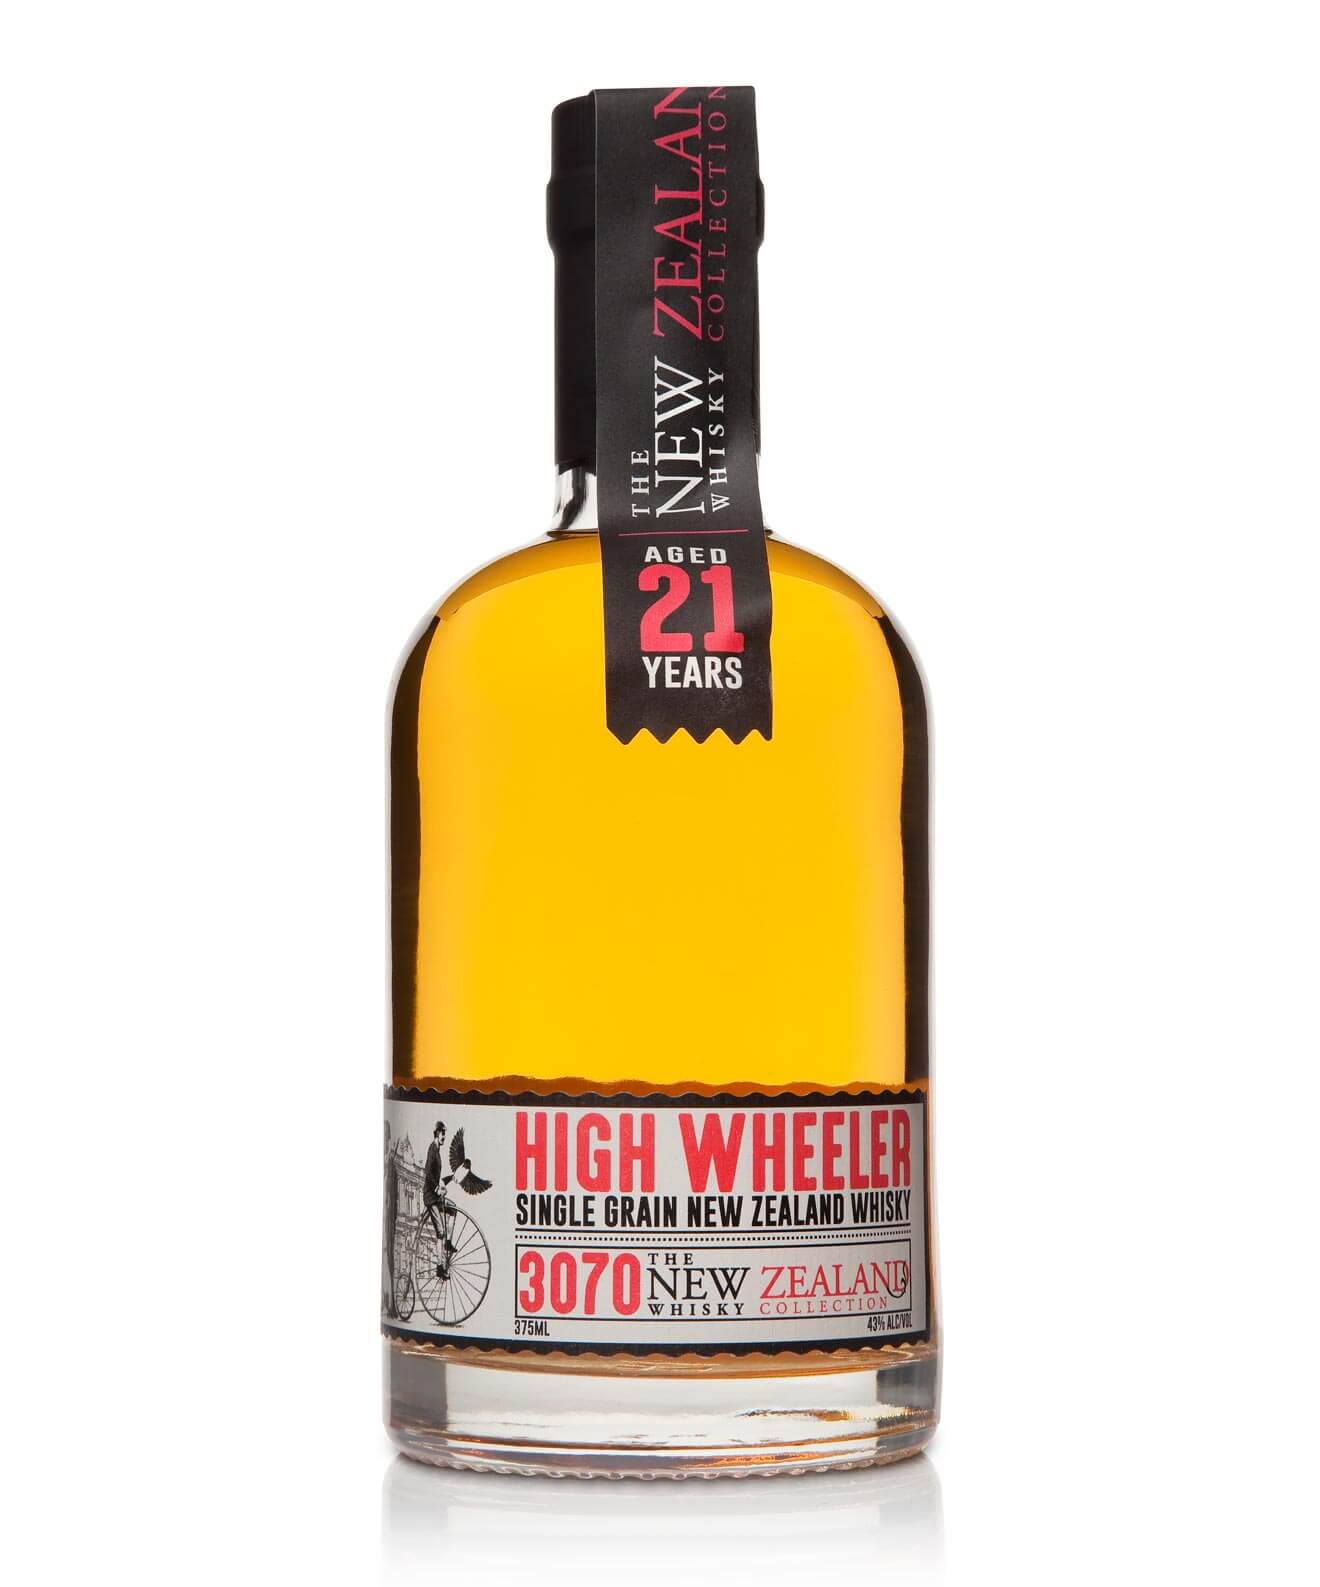 High Wheeler 21 Year Old Single Grain bottle